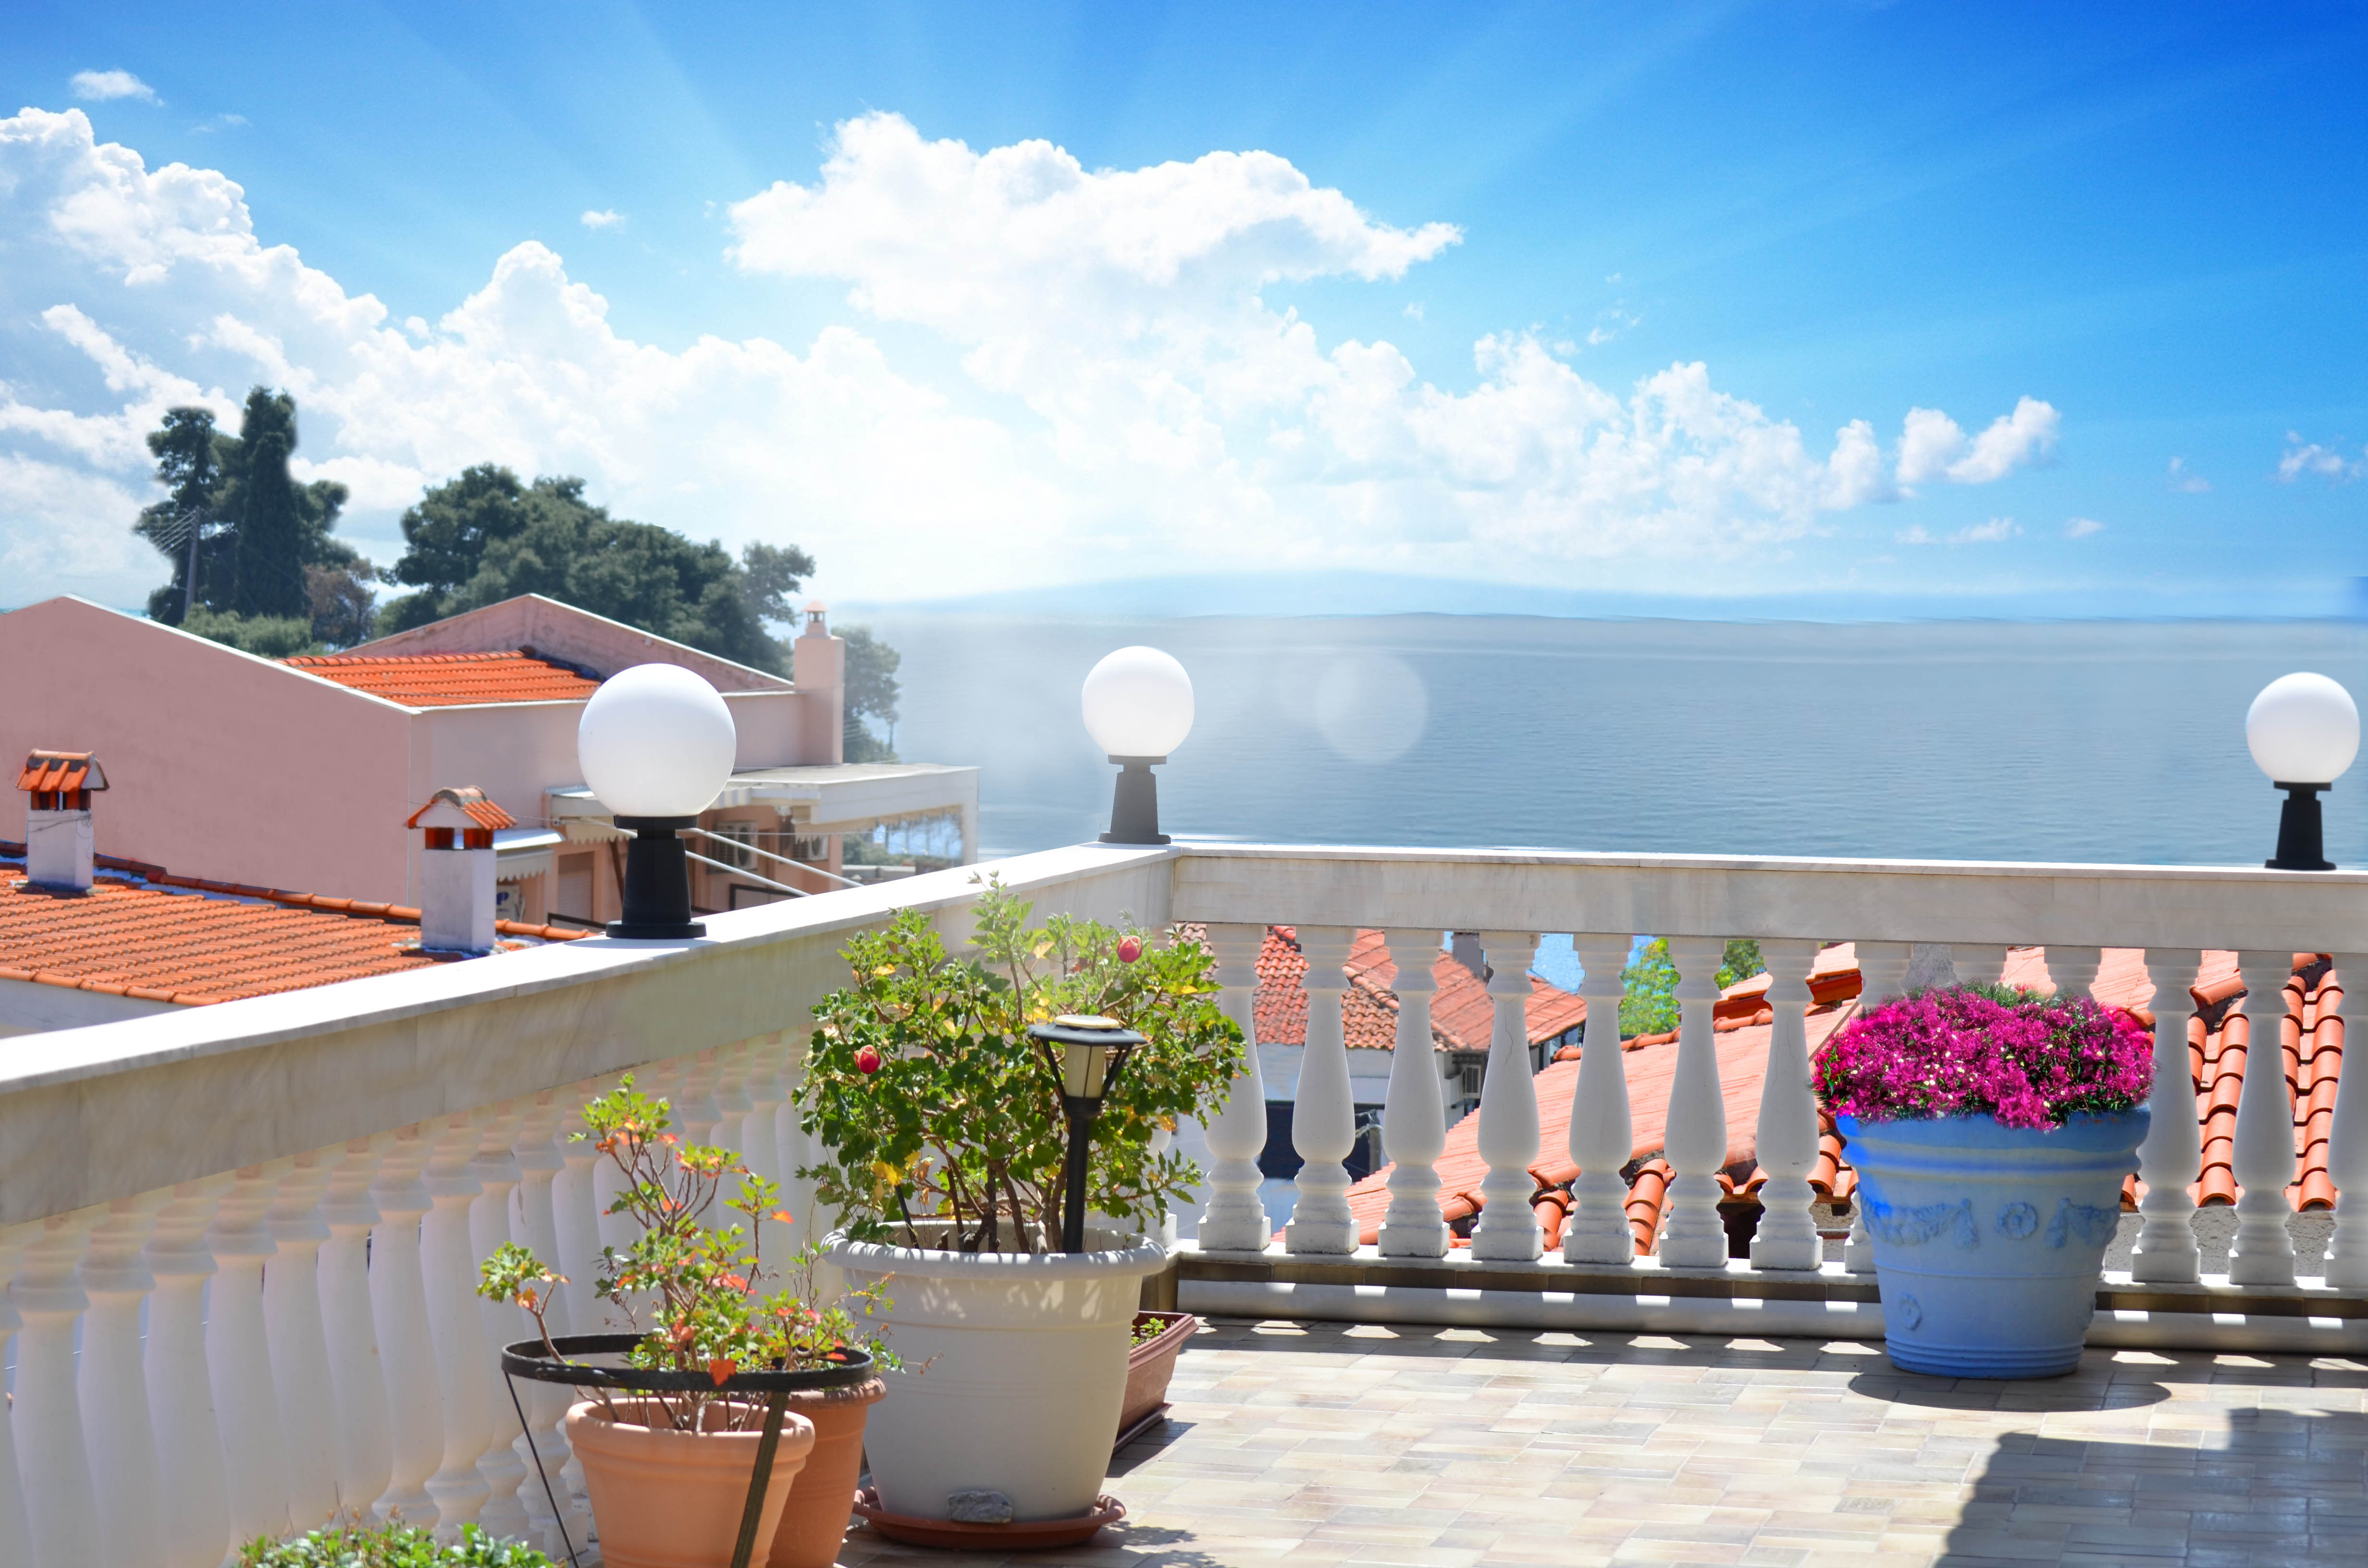 Veranda Seaview - House Capetanios Apartments Rooms to let Neos Marmaras Halkidiki Greece